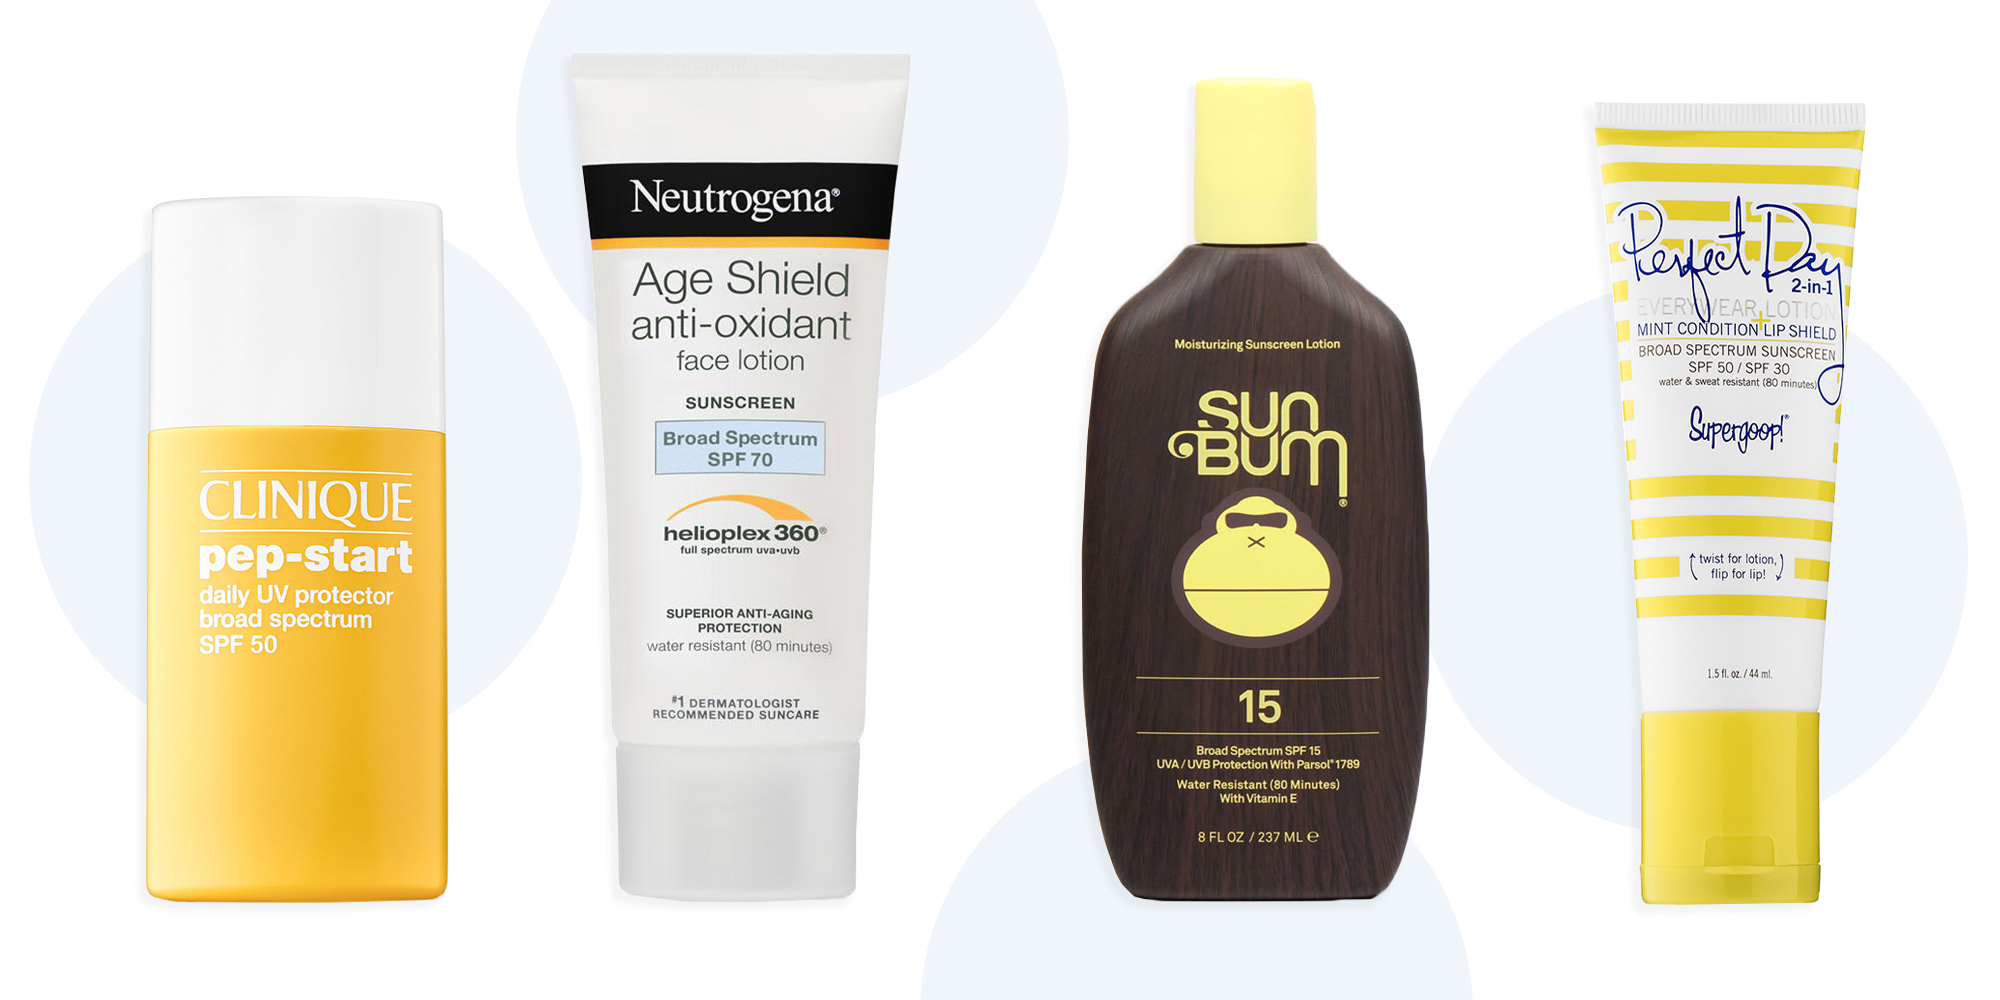 11 best sunscreens 2018 protective sunblock lotions and creams with spf 15. Black Bedroom Furniture Sets. Home Design Ideas